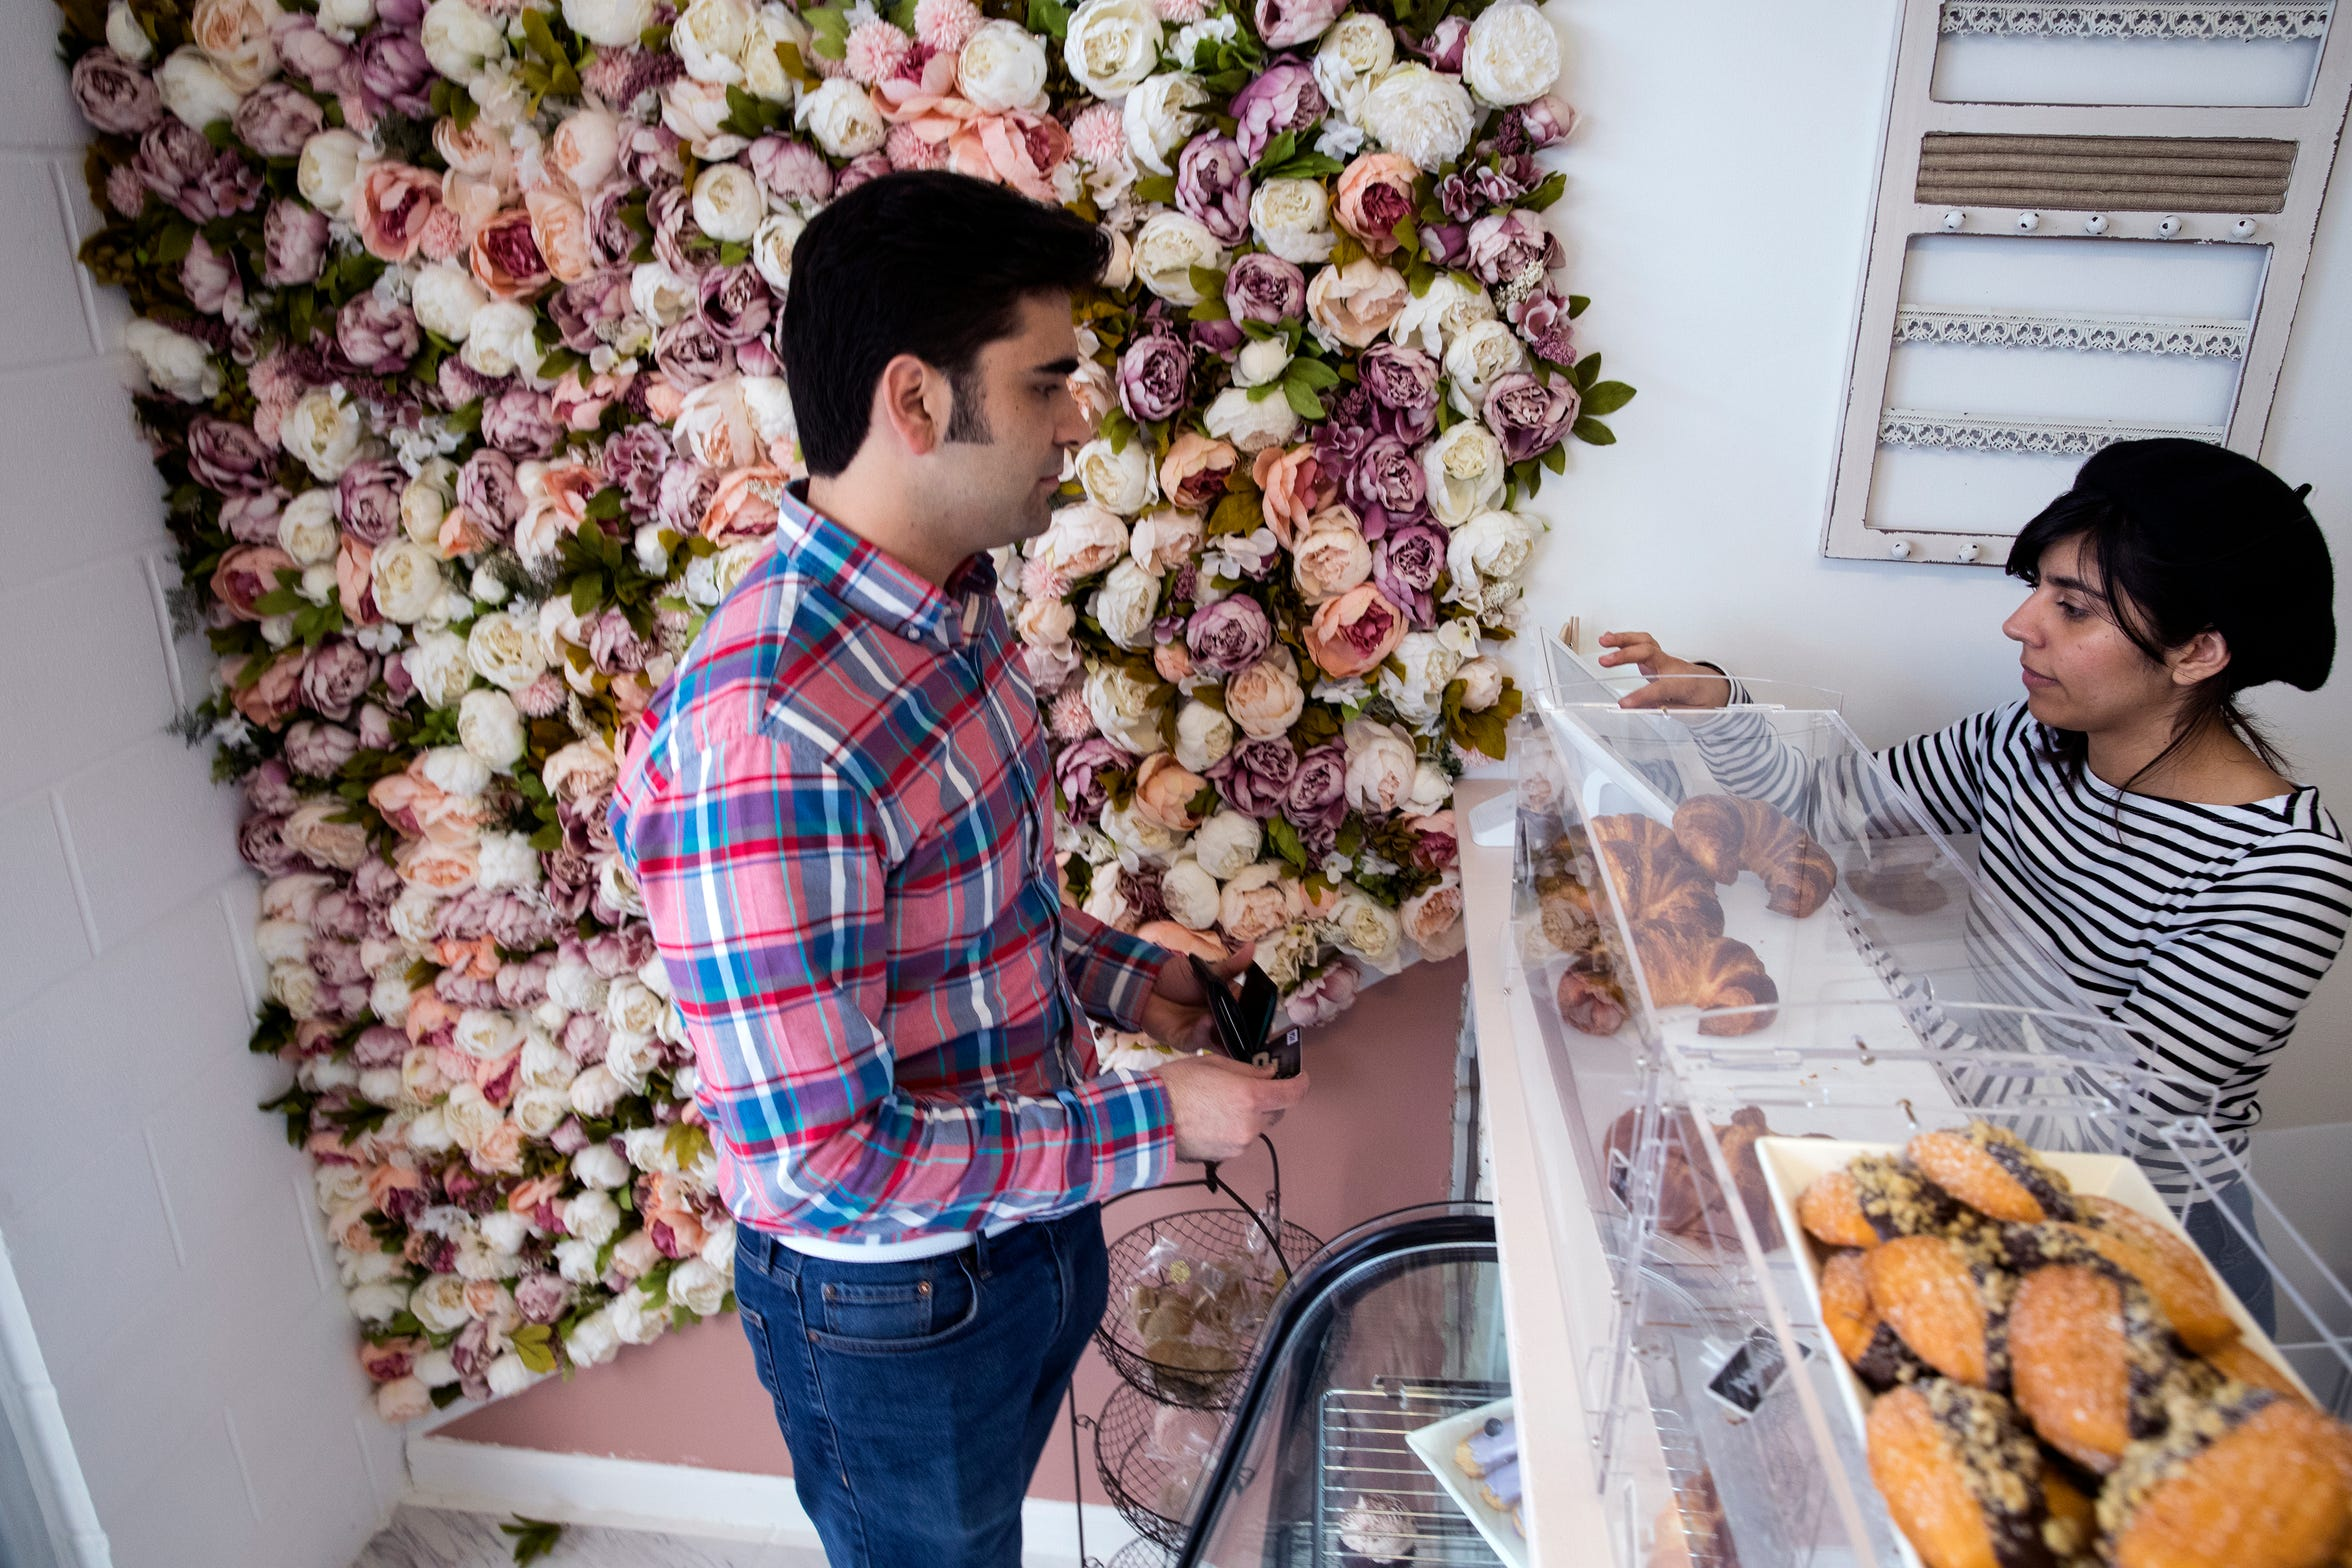 Jacob Crain (left) orders from Sadie Lopez, an employee with Bien Merite Chocolate and Bakery, on Friday, March 15, 2019. It is a new French bakery on South Staples Street that features pastries and chocolates that are made with whole ingredients and interesting combinations. They are also known for their macha and coffees.